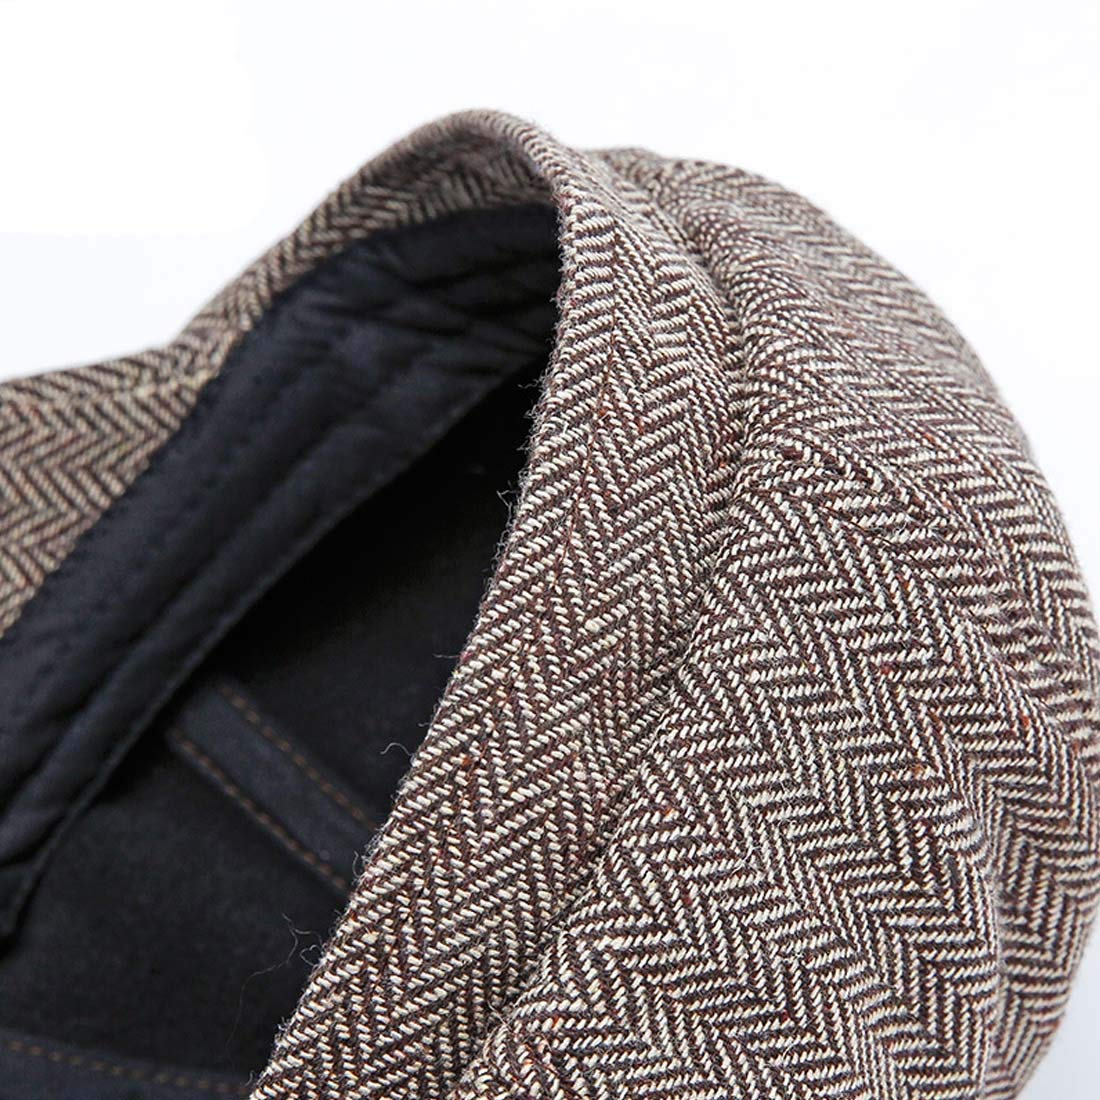 Topcoco Mens Classic Visor Newsboy Cabbie Hat Fall Winter Warm Ivy Beret Flat Cap